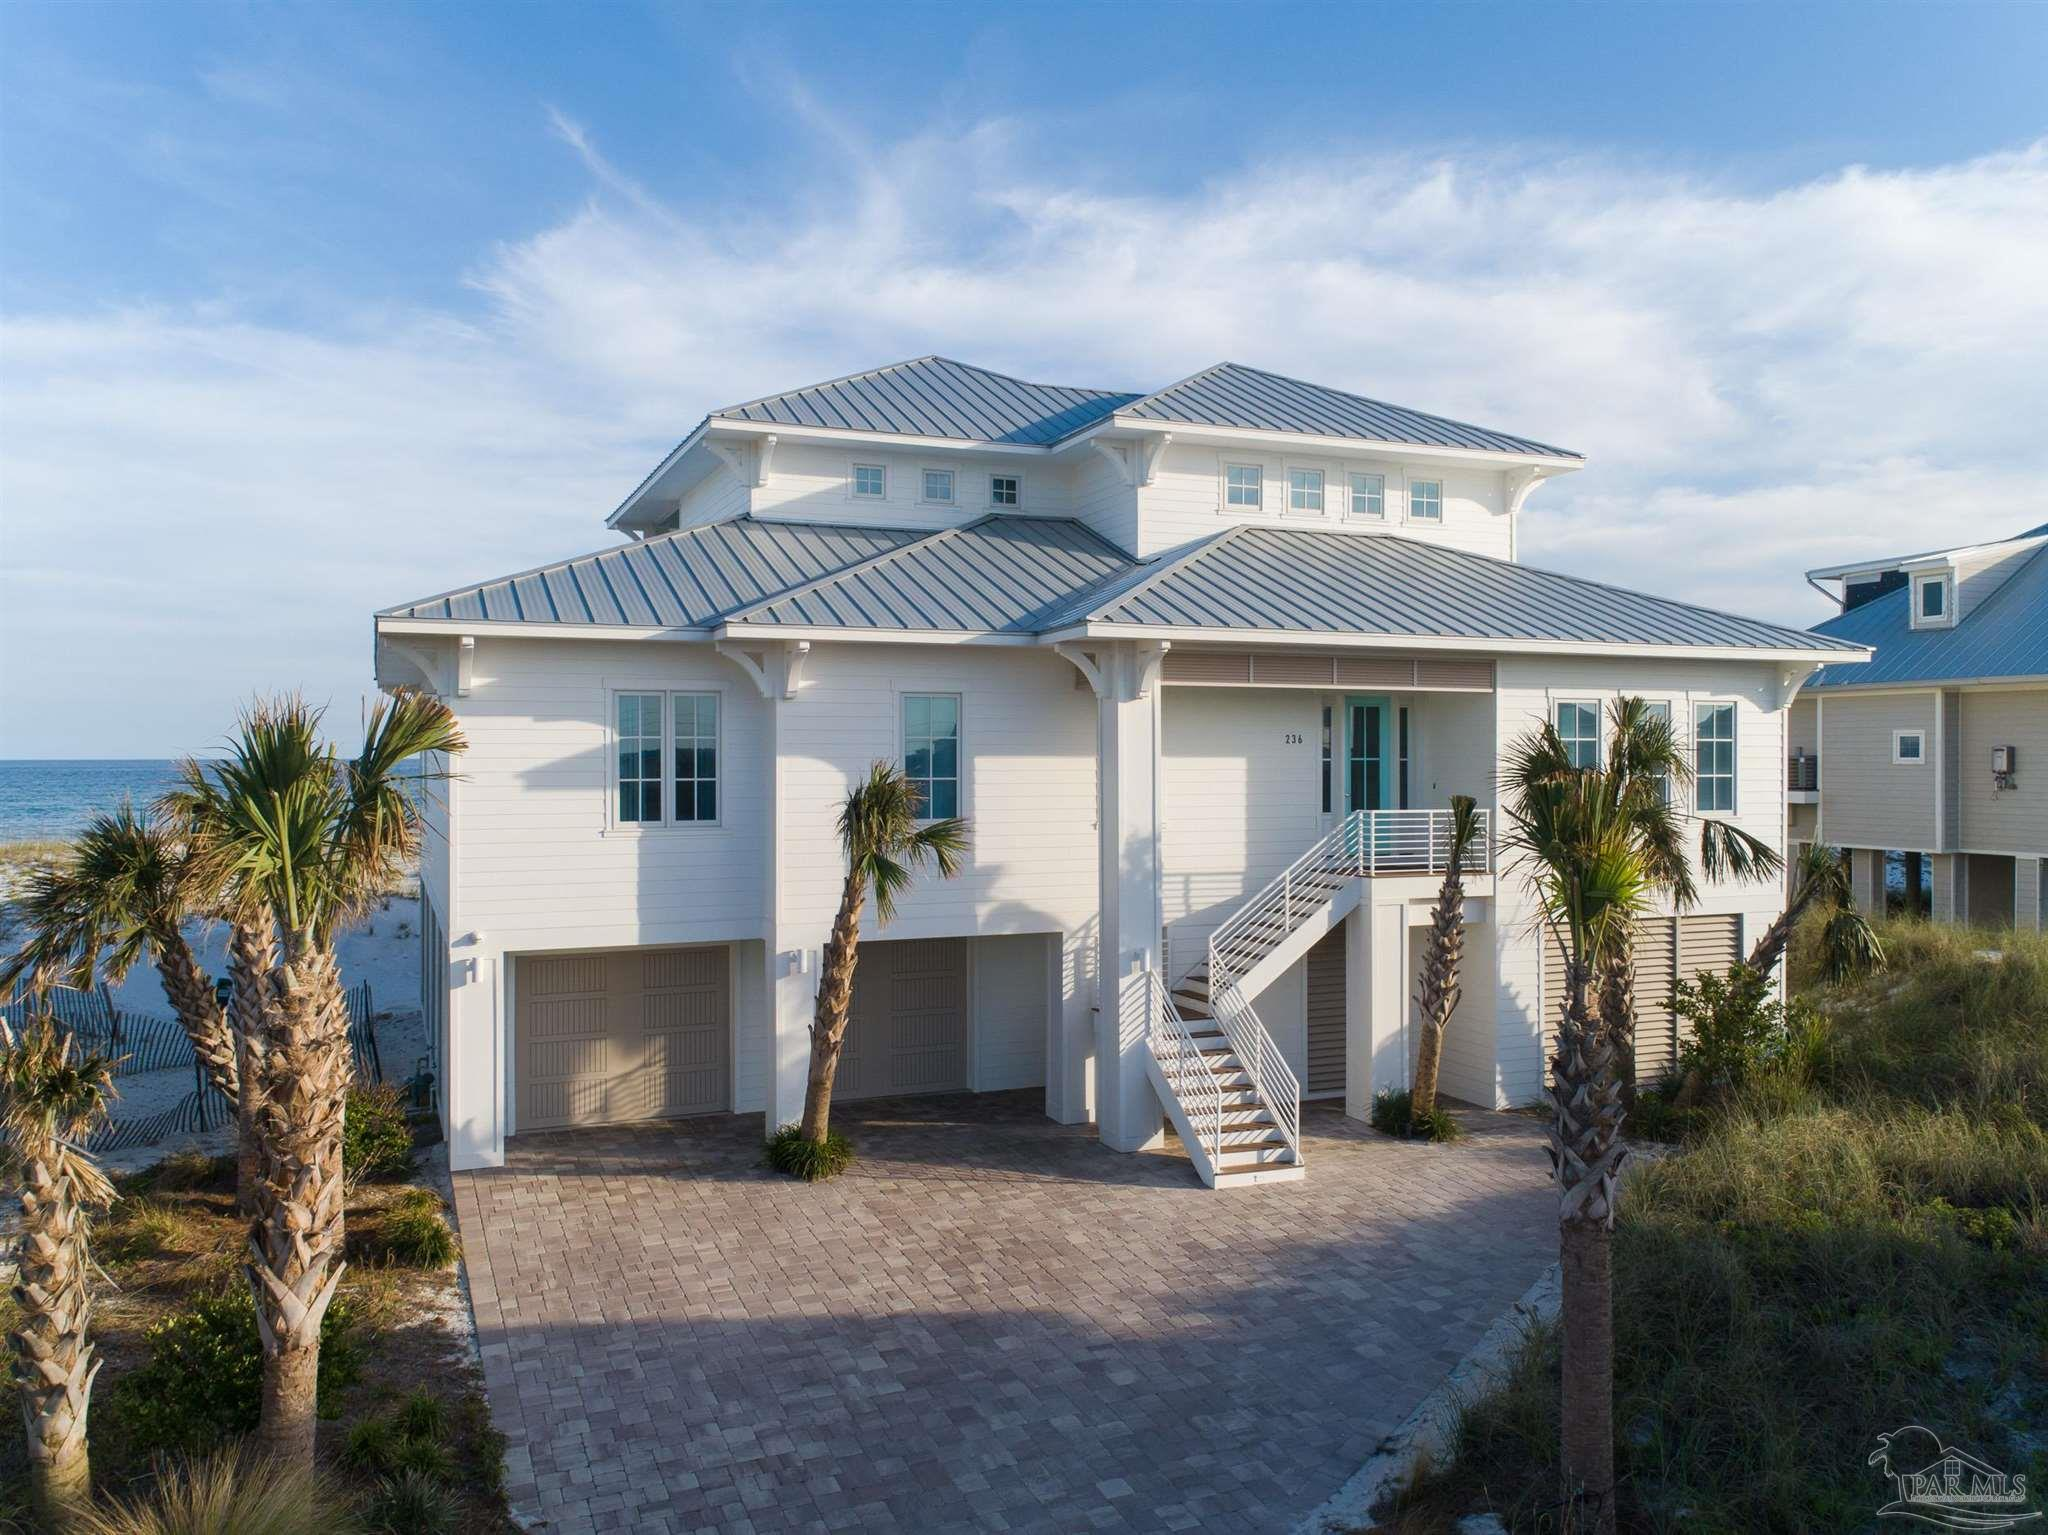 """Experience the luxury of a 30A-inspired home within the peaceful Pensacola Beach community, which was named the """"Most Beautiful Place in Florida"""" by Conde Nast Traveler. This coastal paradise will fuel your desire to leave the crowds and traffic of neighboring towns behind you. As you step into this professionally designed home, you're greeted by breathtaking Gulf of Mexico views and elegant finishes highlighting the coastal shiplap throughout. The open concept living area is flanked by a wall of windows overlooking the sugar-white sand beach and emerald waters, providing a wonderful space to entertain. Enjoy gorgeous views while preparing meals in the chef-style kitchen, featuring an island with seating for 4, inset cabinetry, quartz countertops, SubZero refrigerator, 6-burner gas range, and double oven. Just off the kitchen is a large walk-in pantry where you'll find a full-size freezer. The dining area comfortably seats 12, and the entire living space offers easy access to the expansive covered balcony. The master bedroom suite is a private oasis with direct access to the gulf-front balcony and the en suite bathroom includes double vanities, marble countertops, soaking tub, glass-enclosed shower, and large walk-in closet. On the 1st living level you will discover 3 additional bedrooms which all have their own en suite bathrooms, including a secondary gulf-front master suite. On the 2nd living level, discover another gathering room with built-in bunkbeds, living area, wet bar with beverage refrigerator, and access to a second gulf-front balcony. Two bedrooms are on either side of the living space, one being a gulf-front junior master with en suite bathroom. A full-size bathroom completes this living space. On the sand level, enjoy beach living with your very own Tiki bar and ample space to store cars, golf carts and all your beach toys. This luxurious turn-key Gulf-front property will be a wonderful primary residence, second home, or successful vacation rental."""